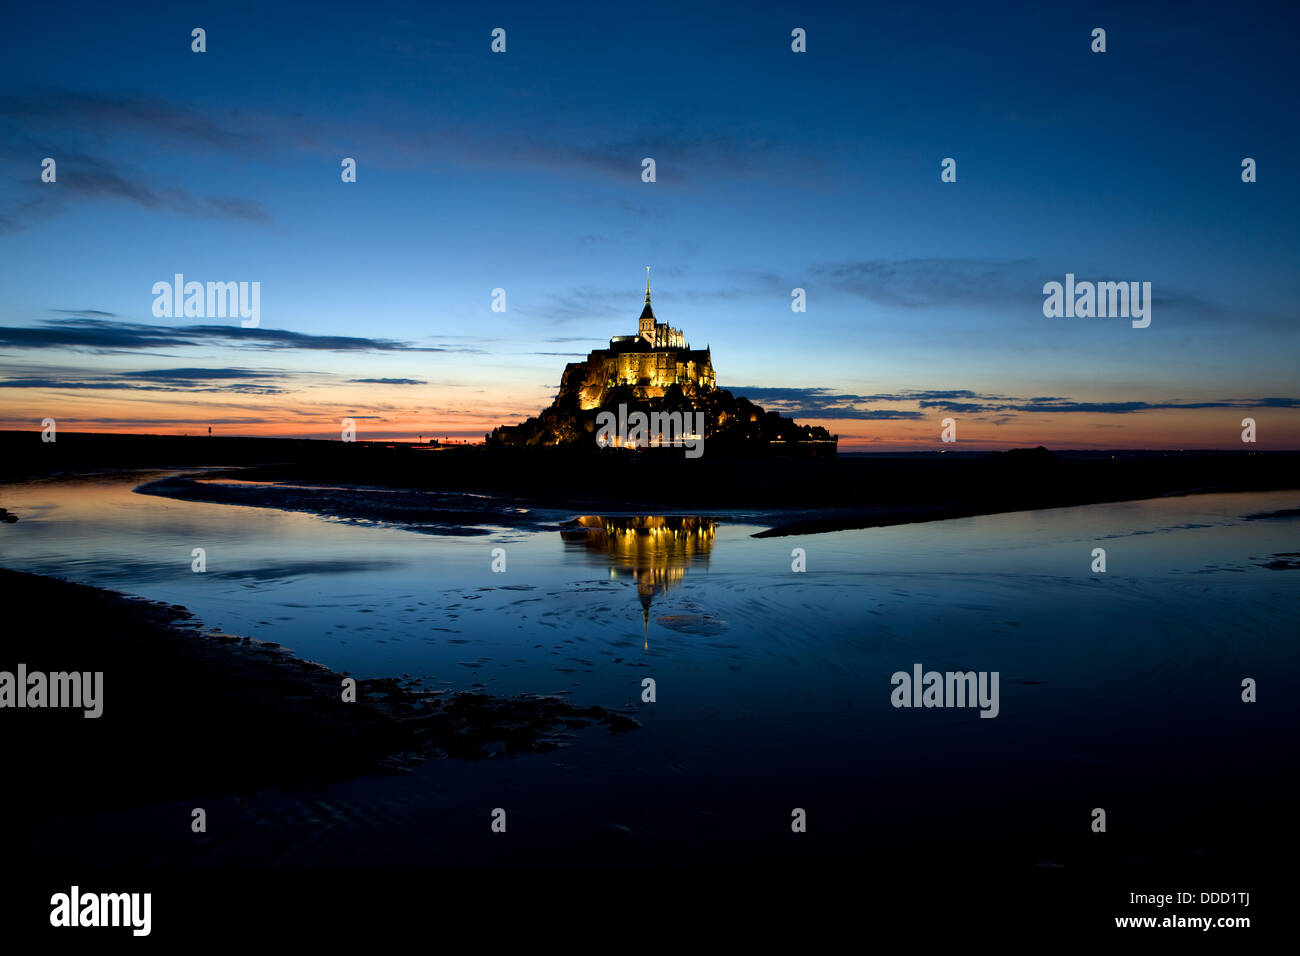 Mont Saint-Michel on the Normandy coast, France - Stock Image